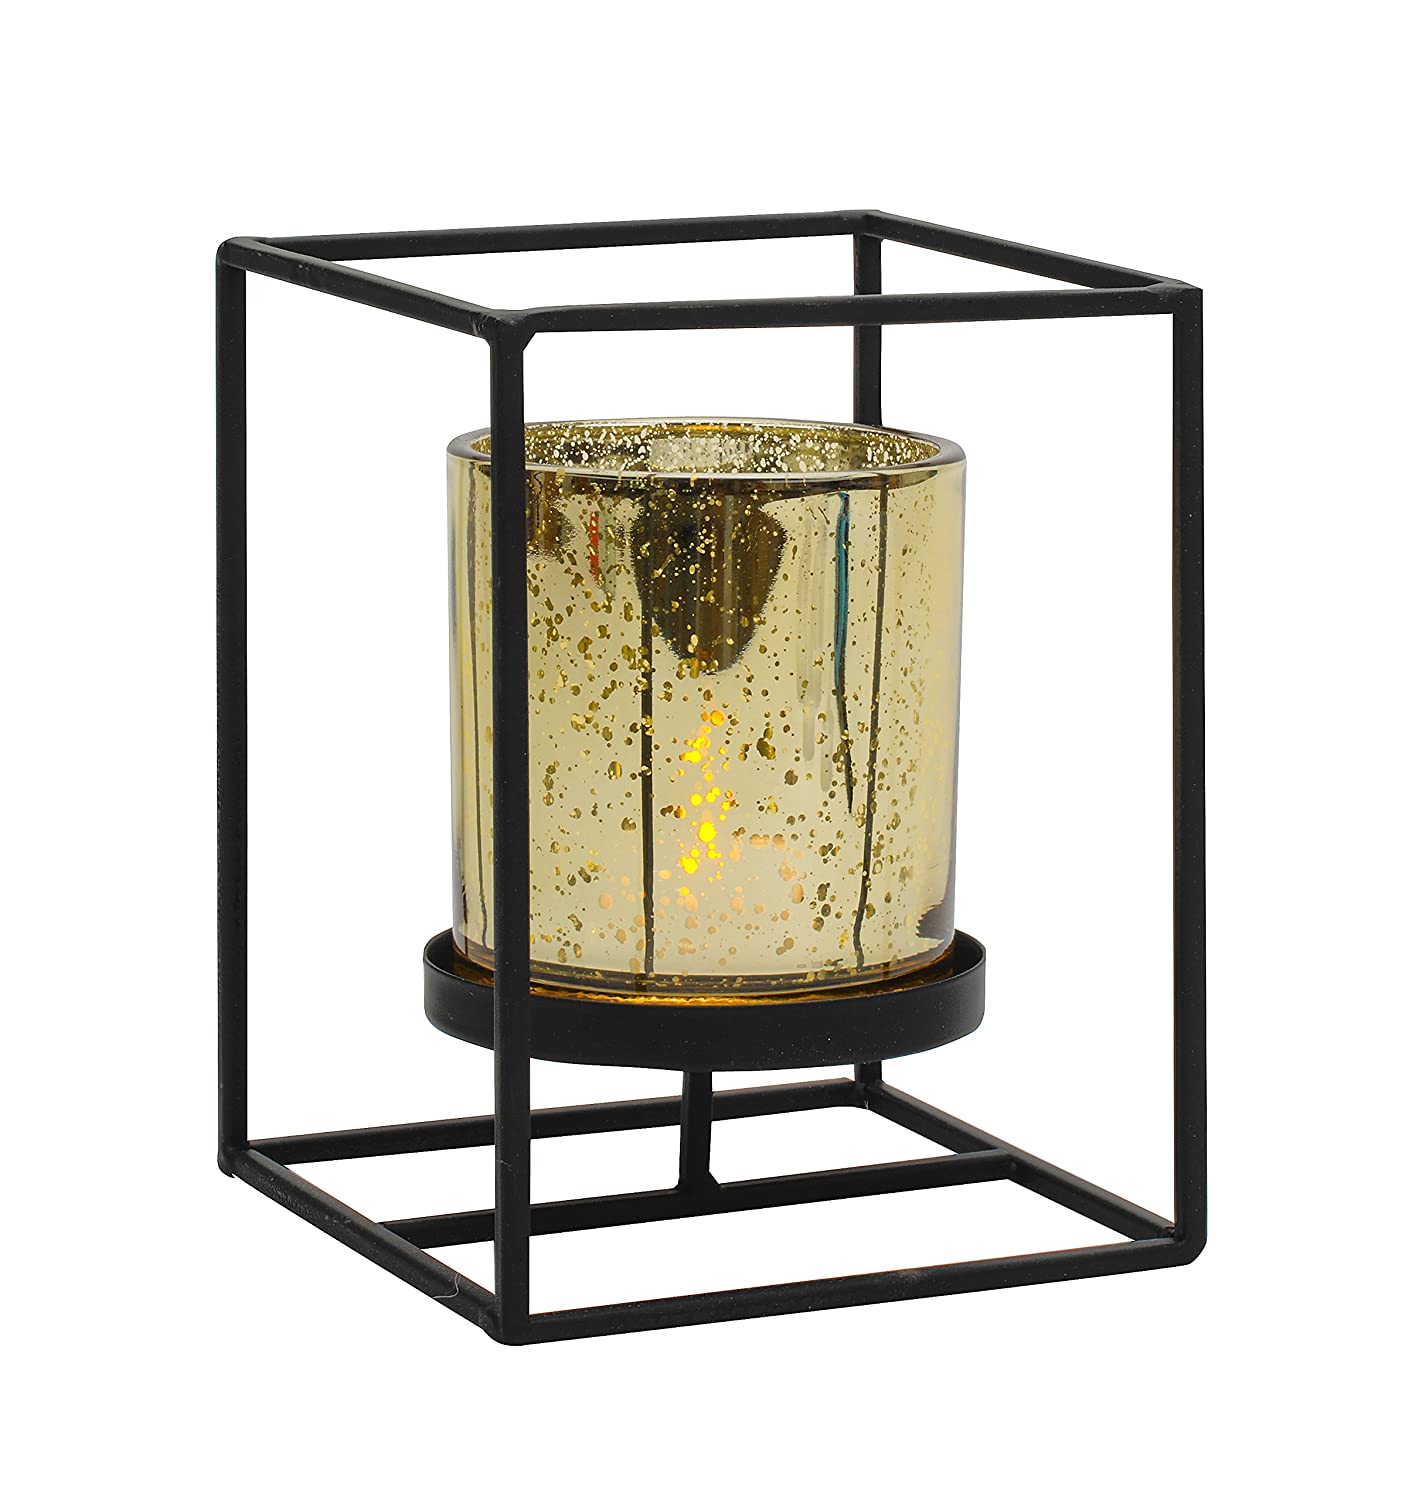 Amazon.com: Biedermann & Sons Metal Box Frame Candle Holder: Home ...